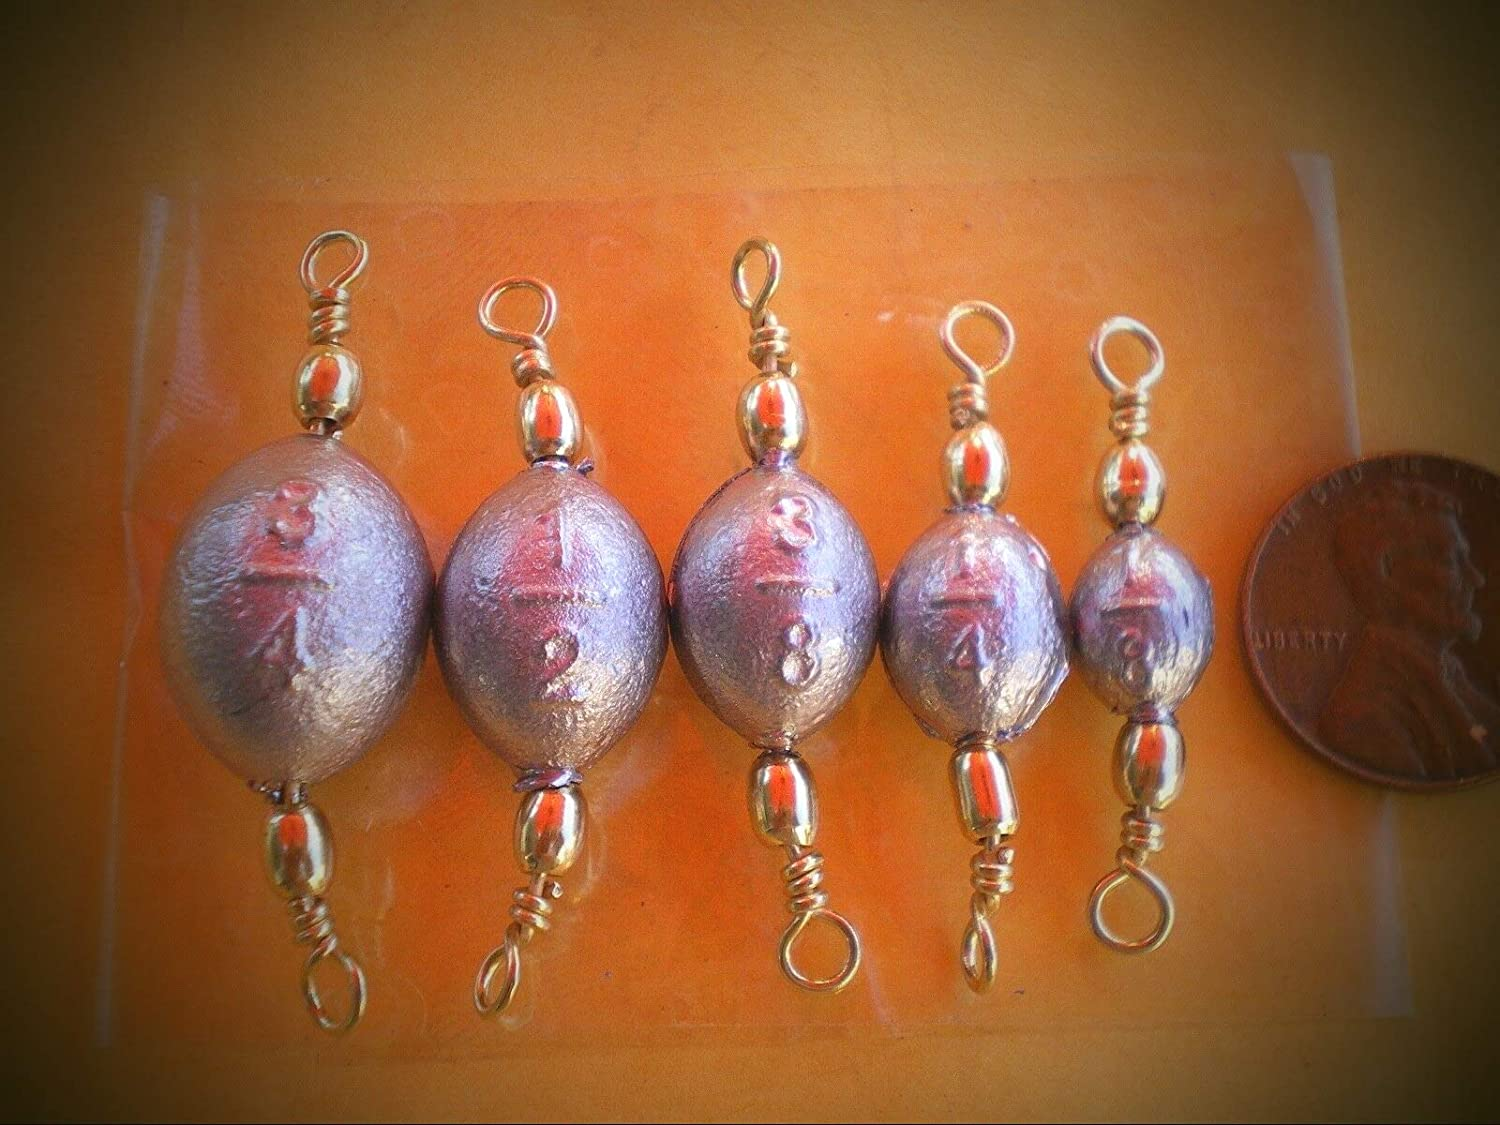 Bank Sinkers 3//8 oz fishing weights FAST FREE SHIPPING 100 Bell